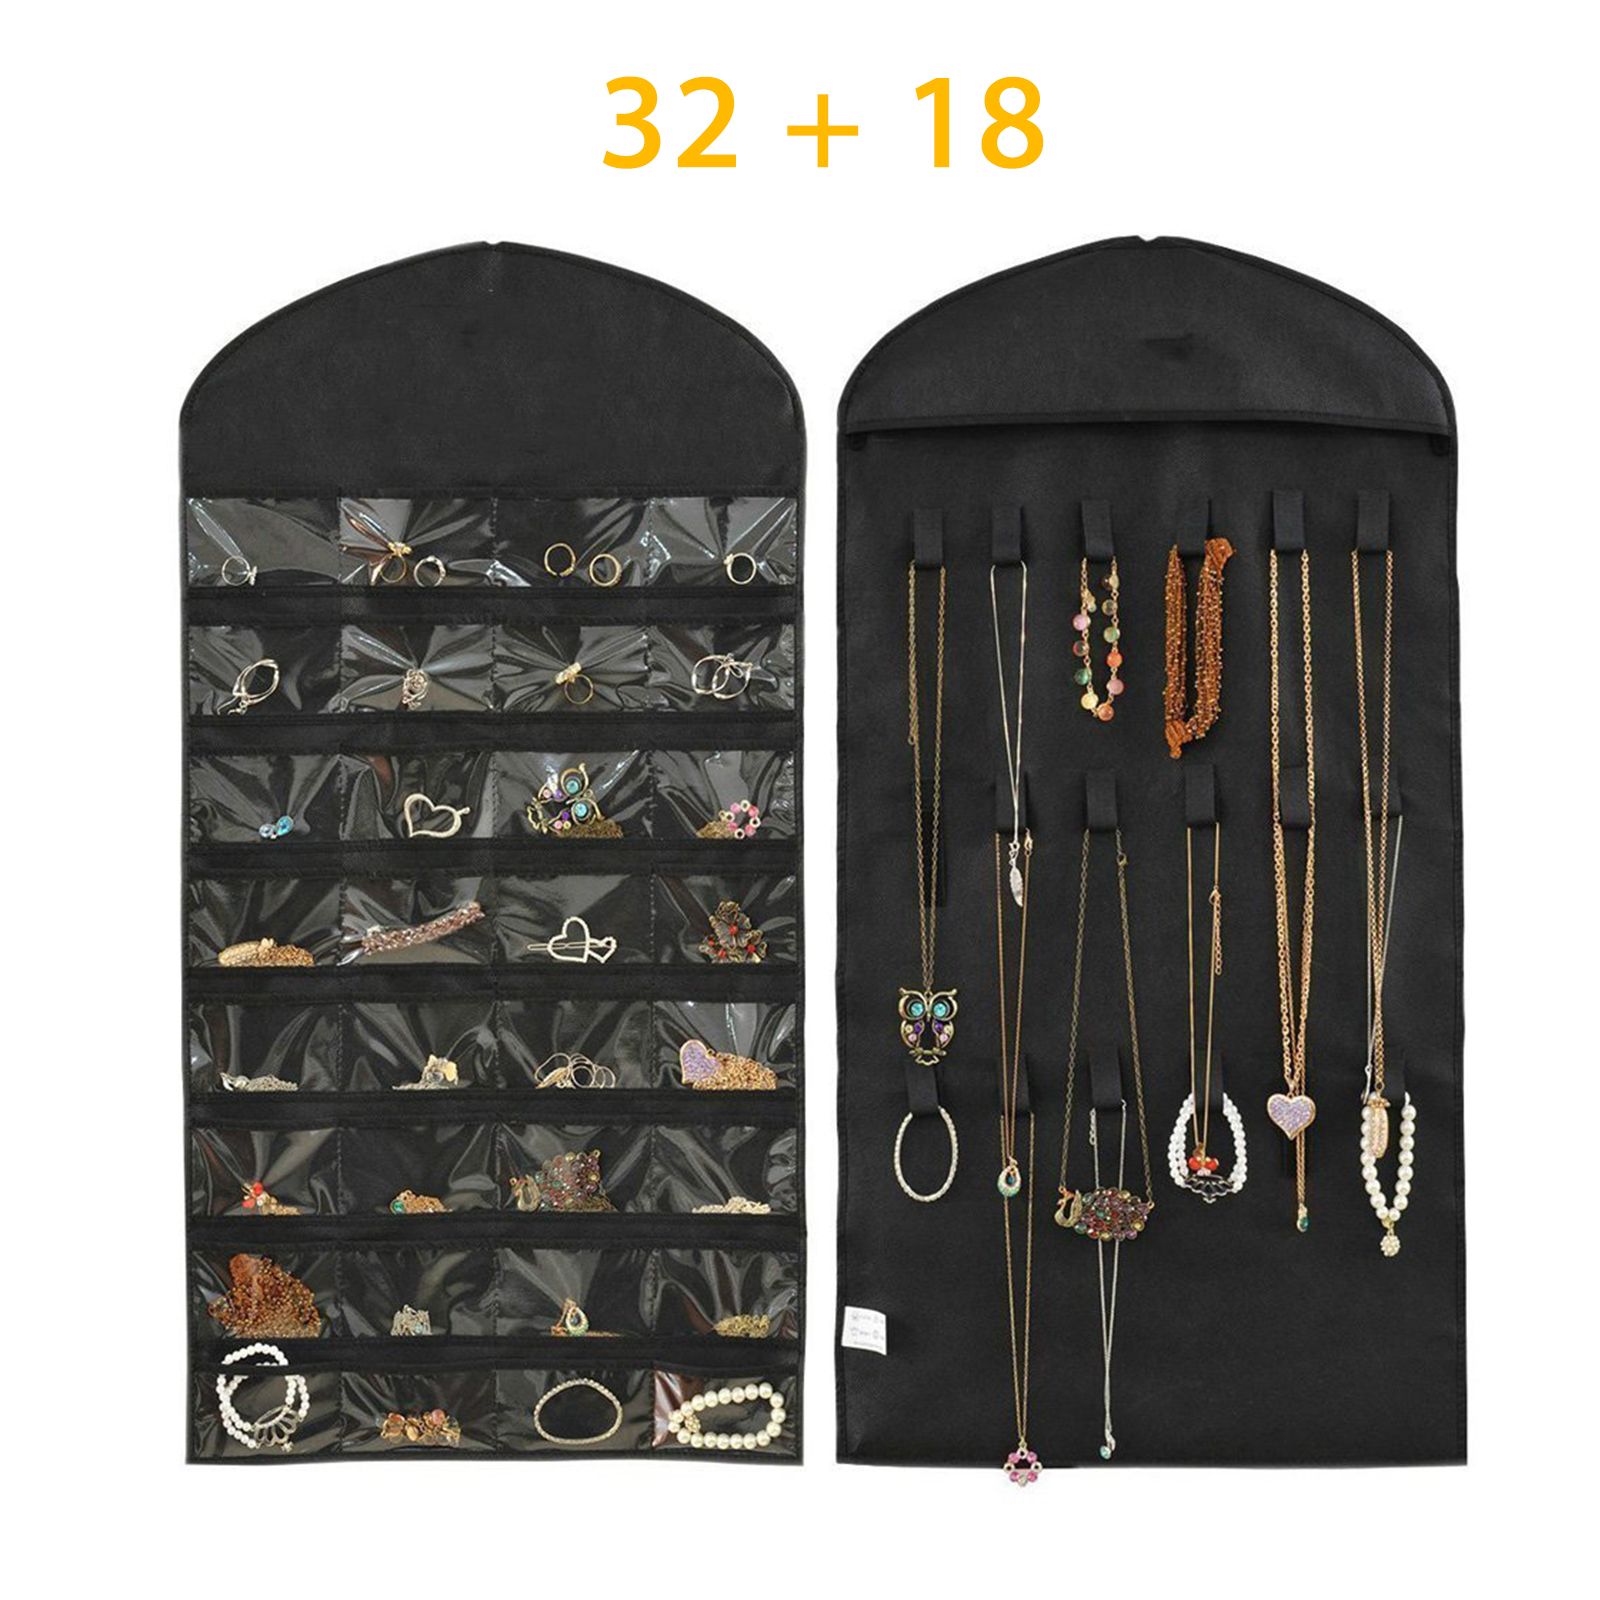 Hanging Bag, EEEKit 32 Pockets Foldable Jewelry Necklace  Hanging Bag Dual Sided Storage Organizer Display Case Bag with Clear PVC Window